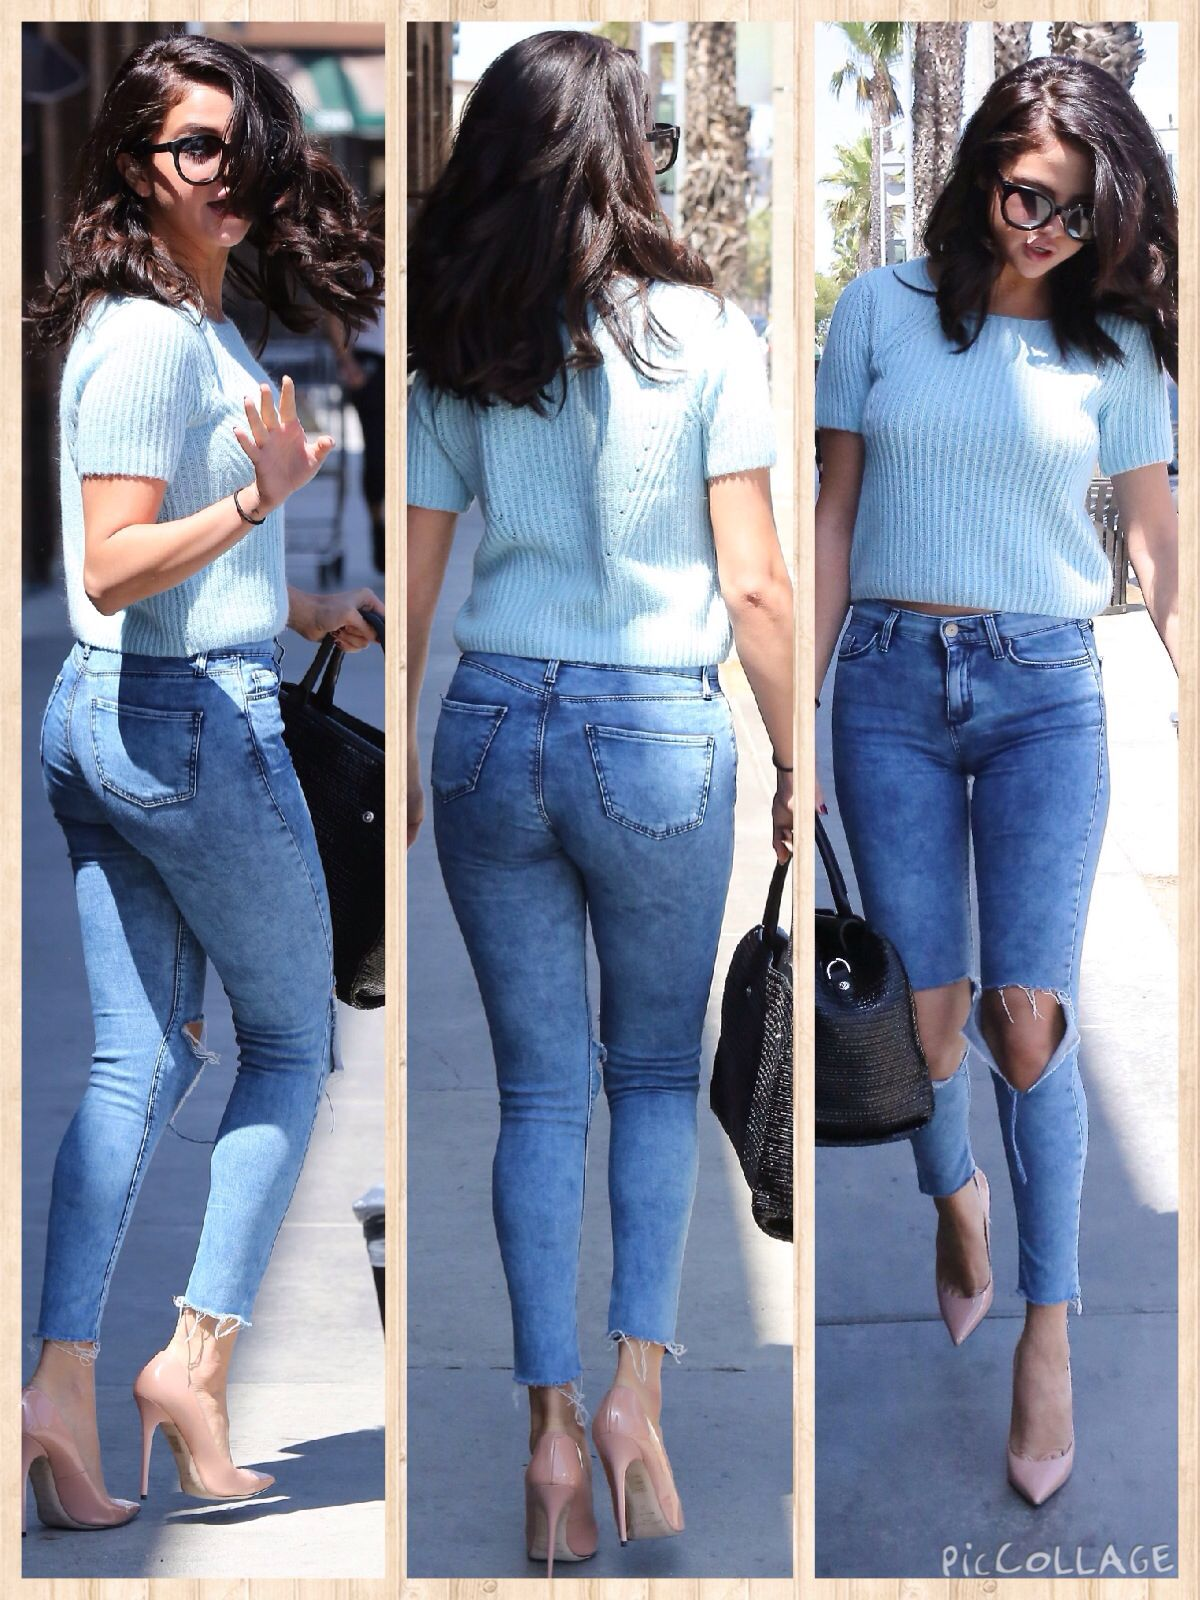 381600c68cac Selena Gomez Booty in Jeans while out in LA